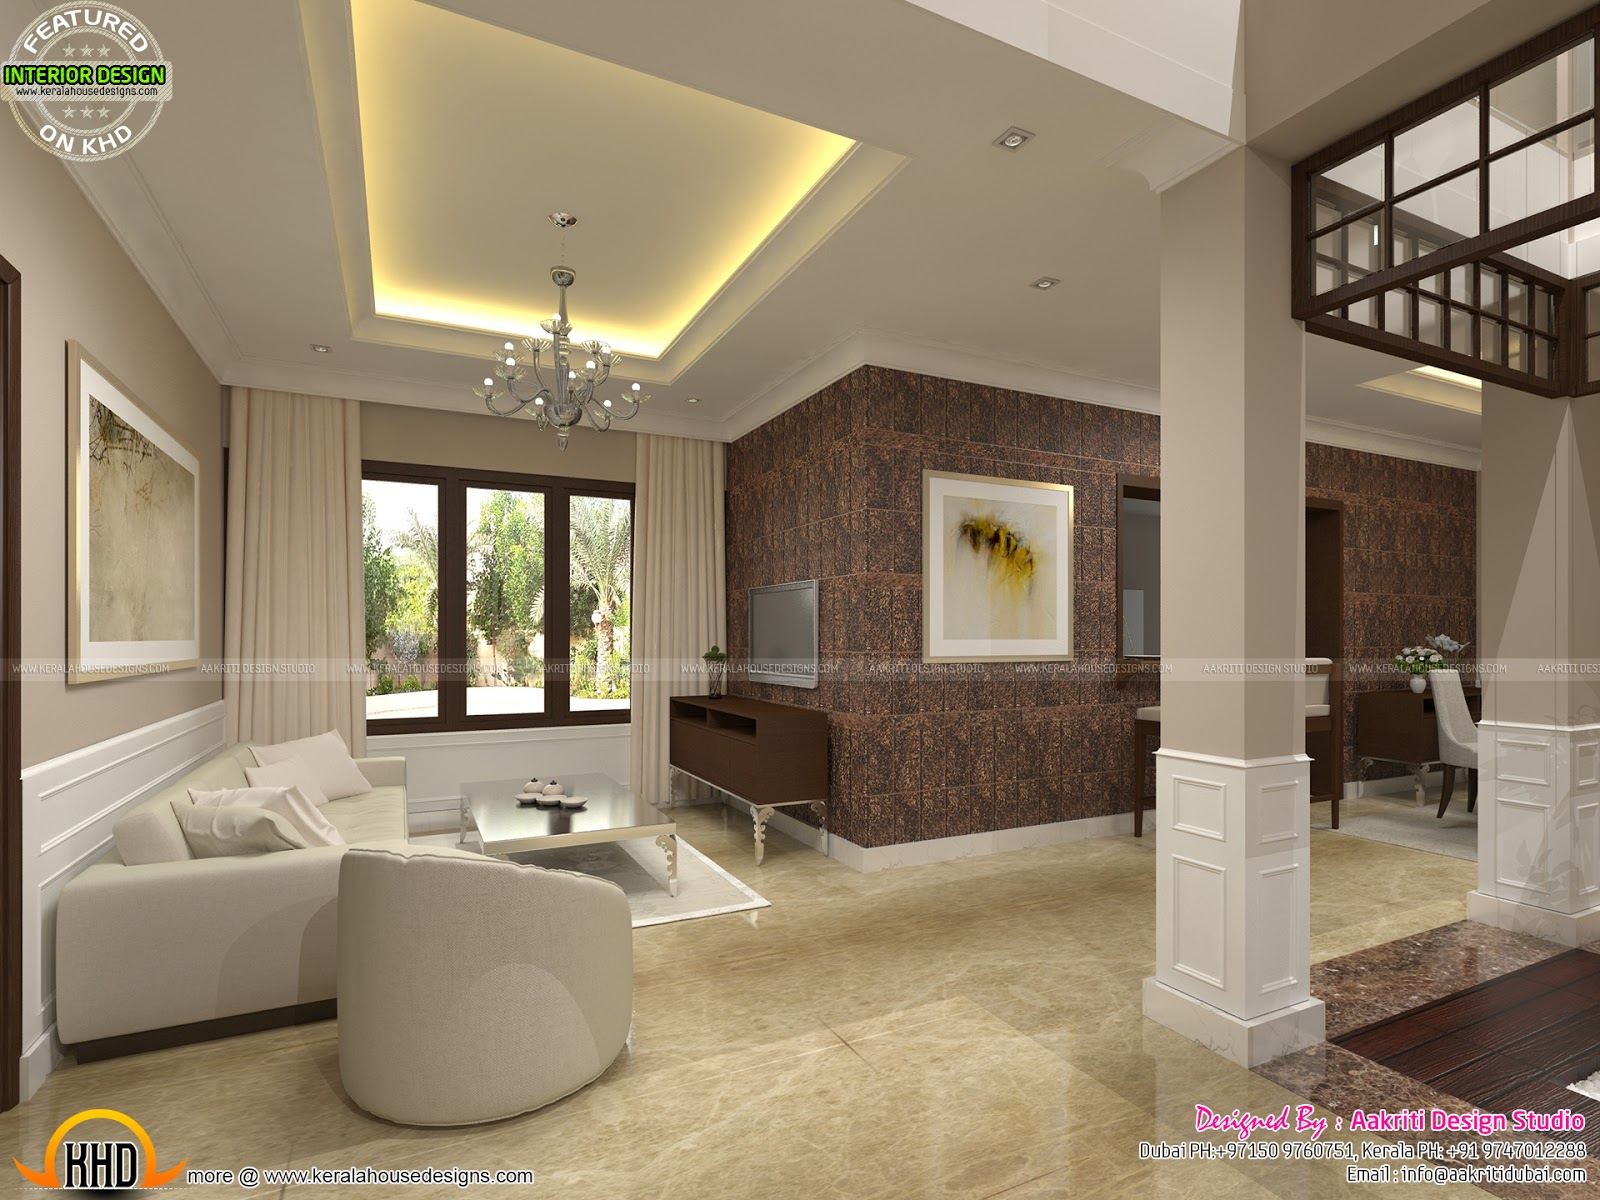 Classic style interior design for living room stair area for Living area interior design